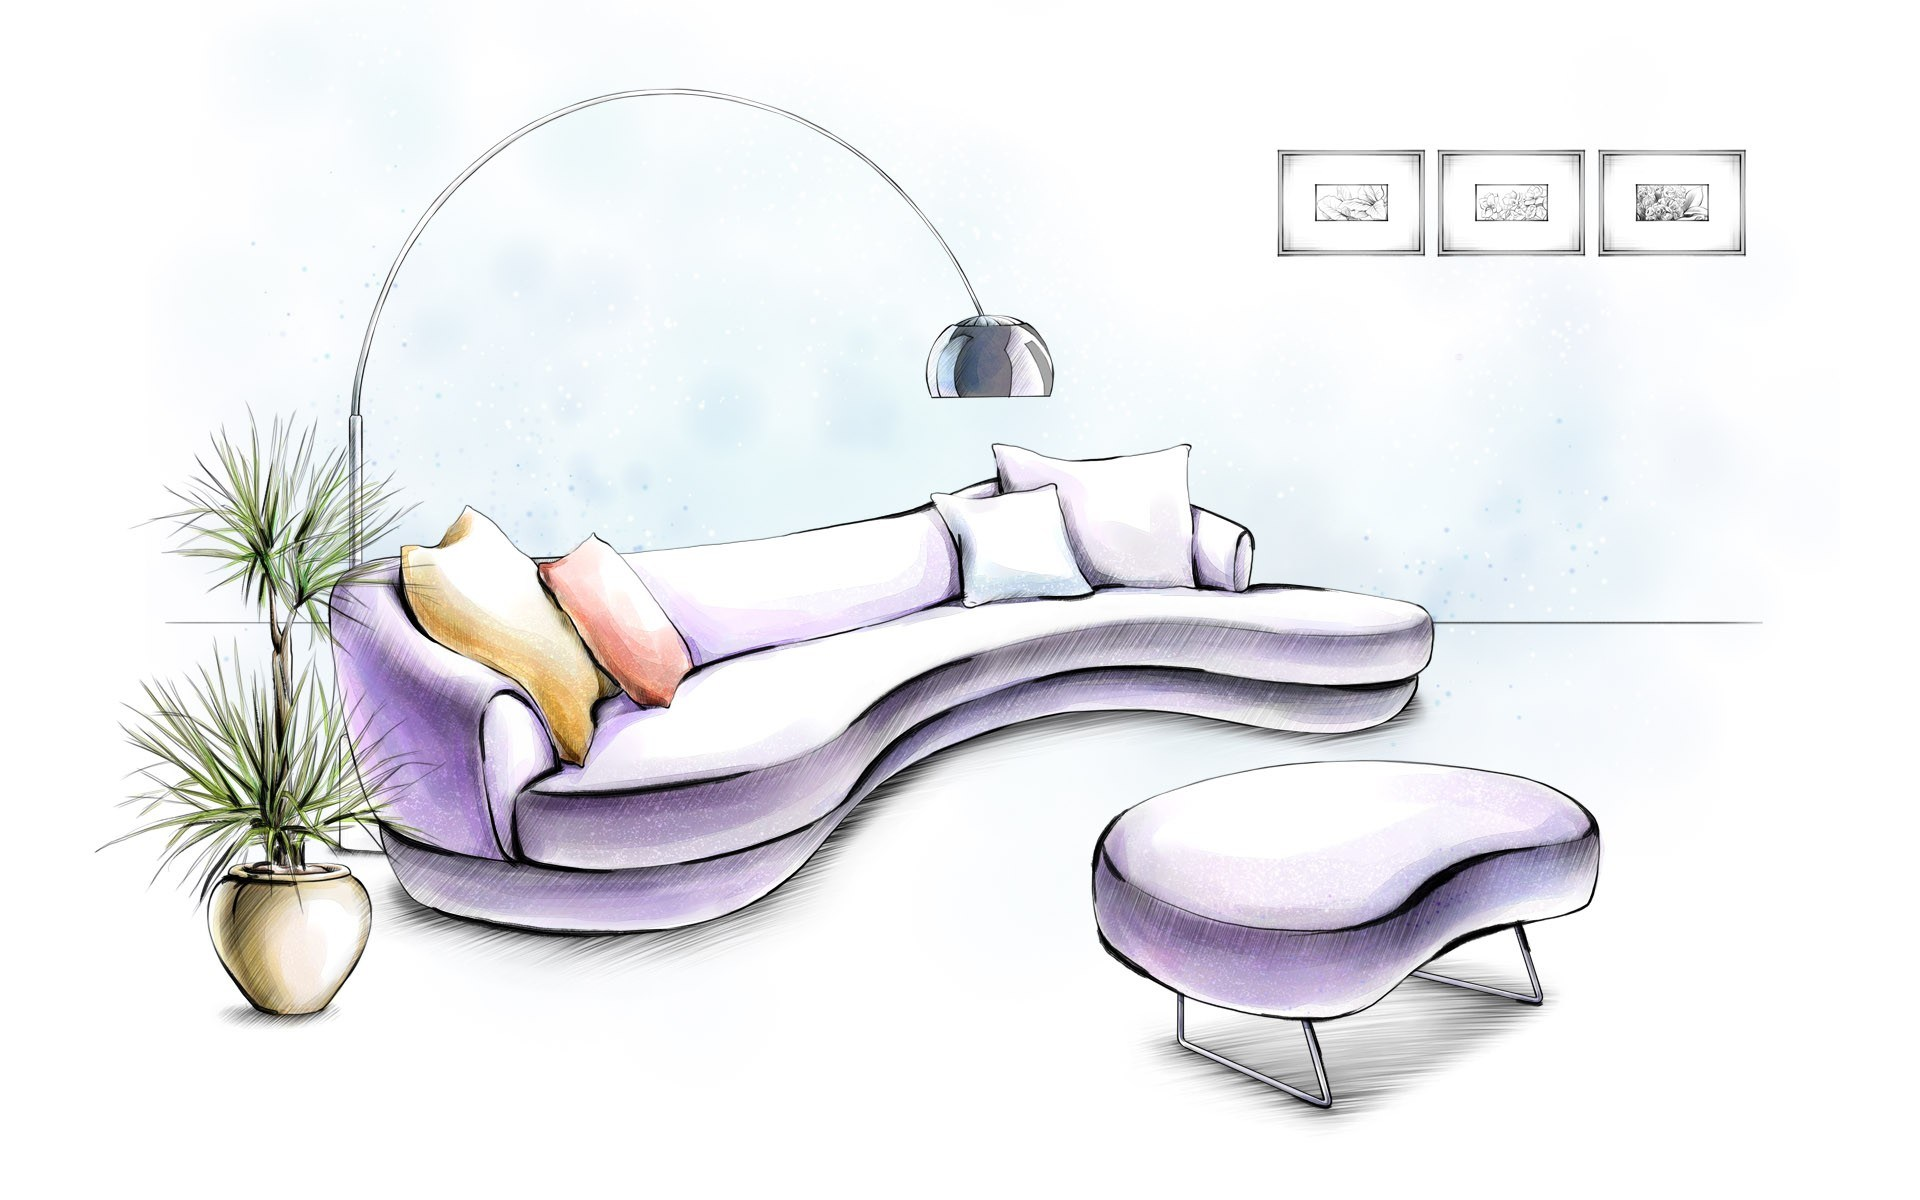 1920x1200 Rise Sofa Fogia Note Design Studio 9 Sketches. Excellent Modern